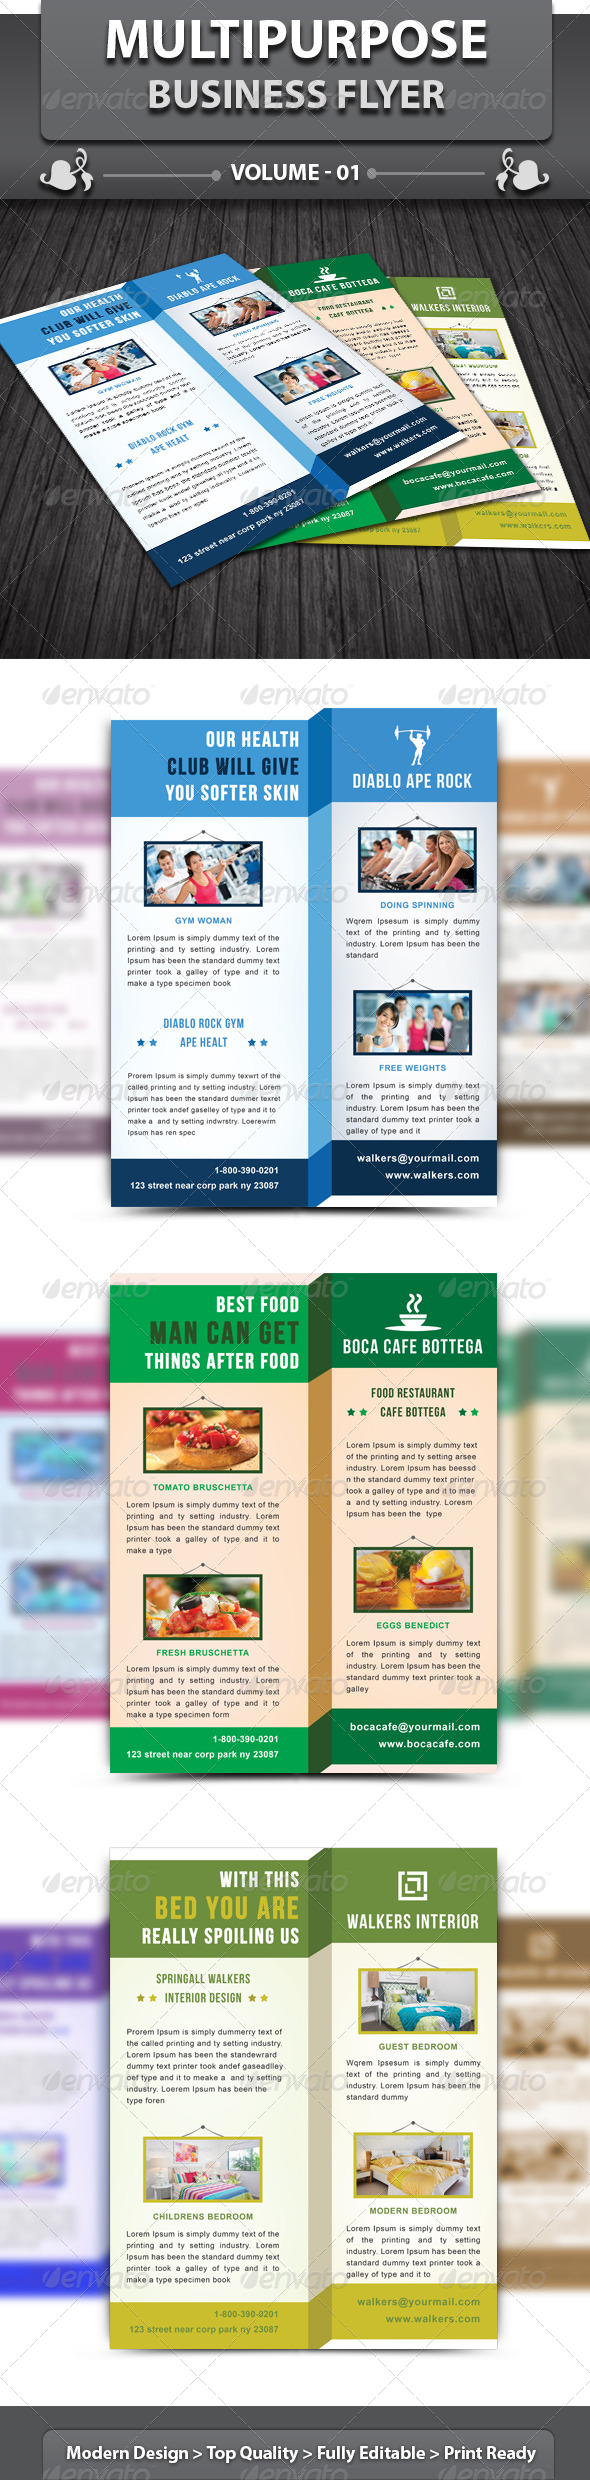 Multipurpose Business Flyer | Volume 1 - Corporate Flyers